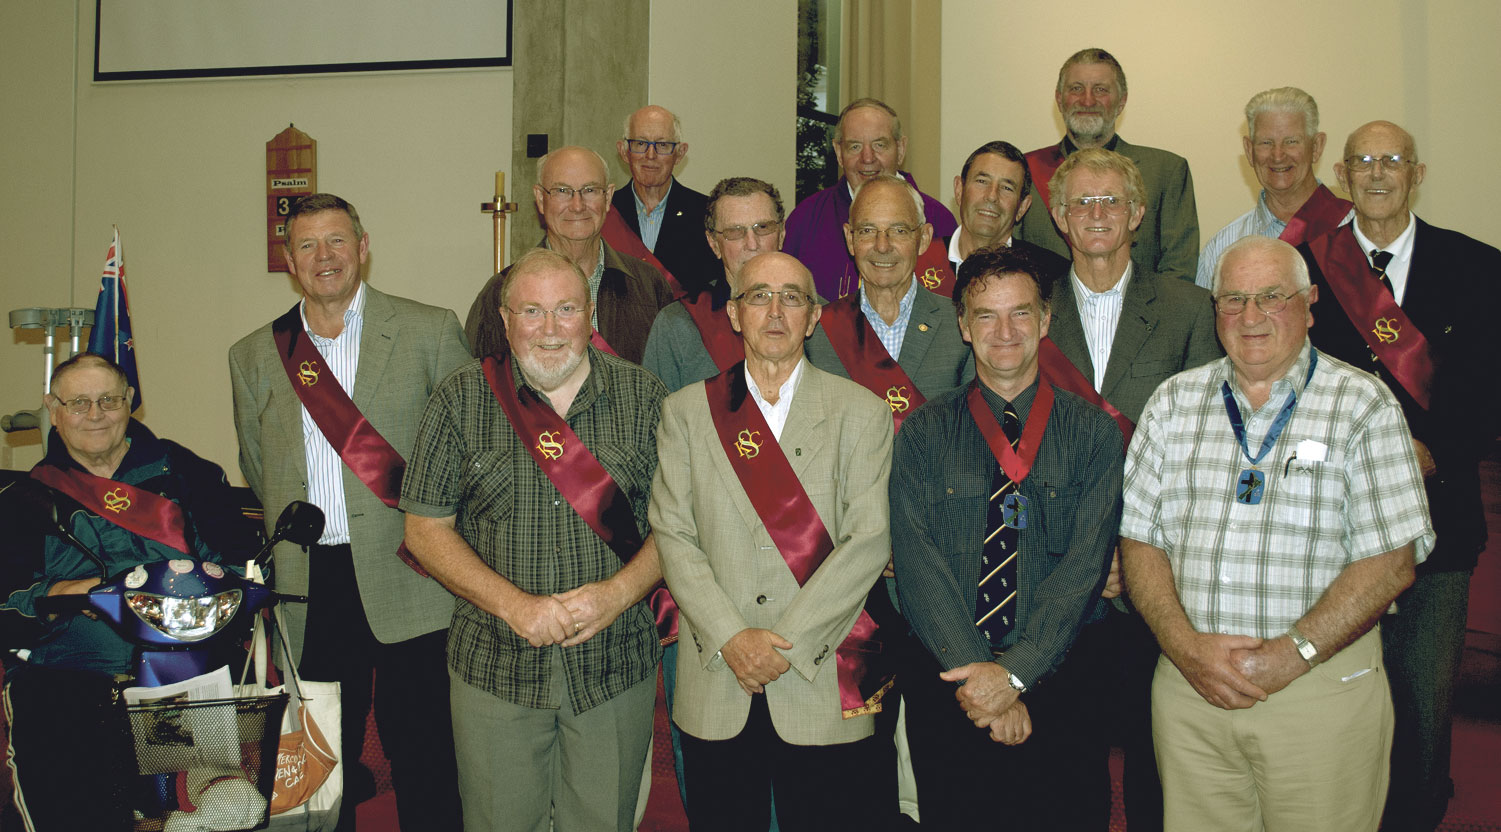 Two new knights of the Southern Cross in Napier Archdiocese of Wellington